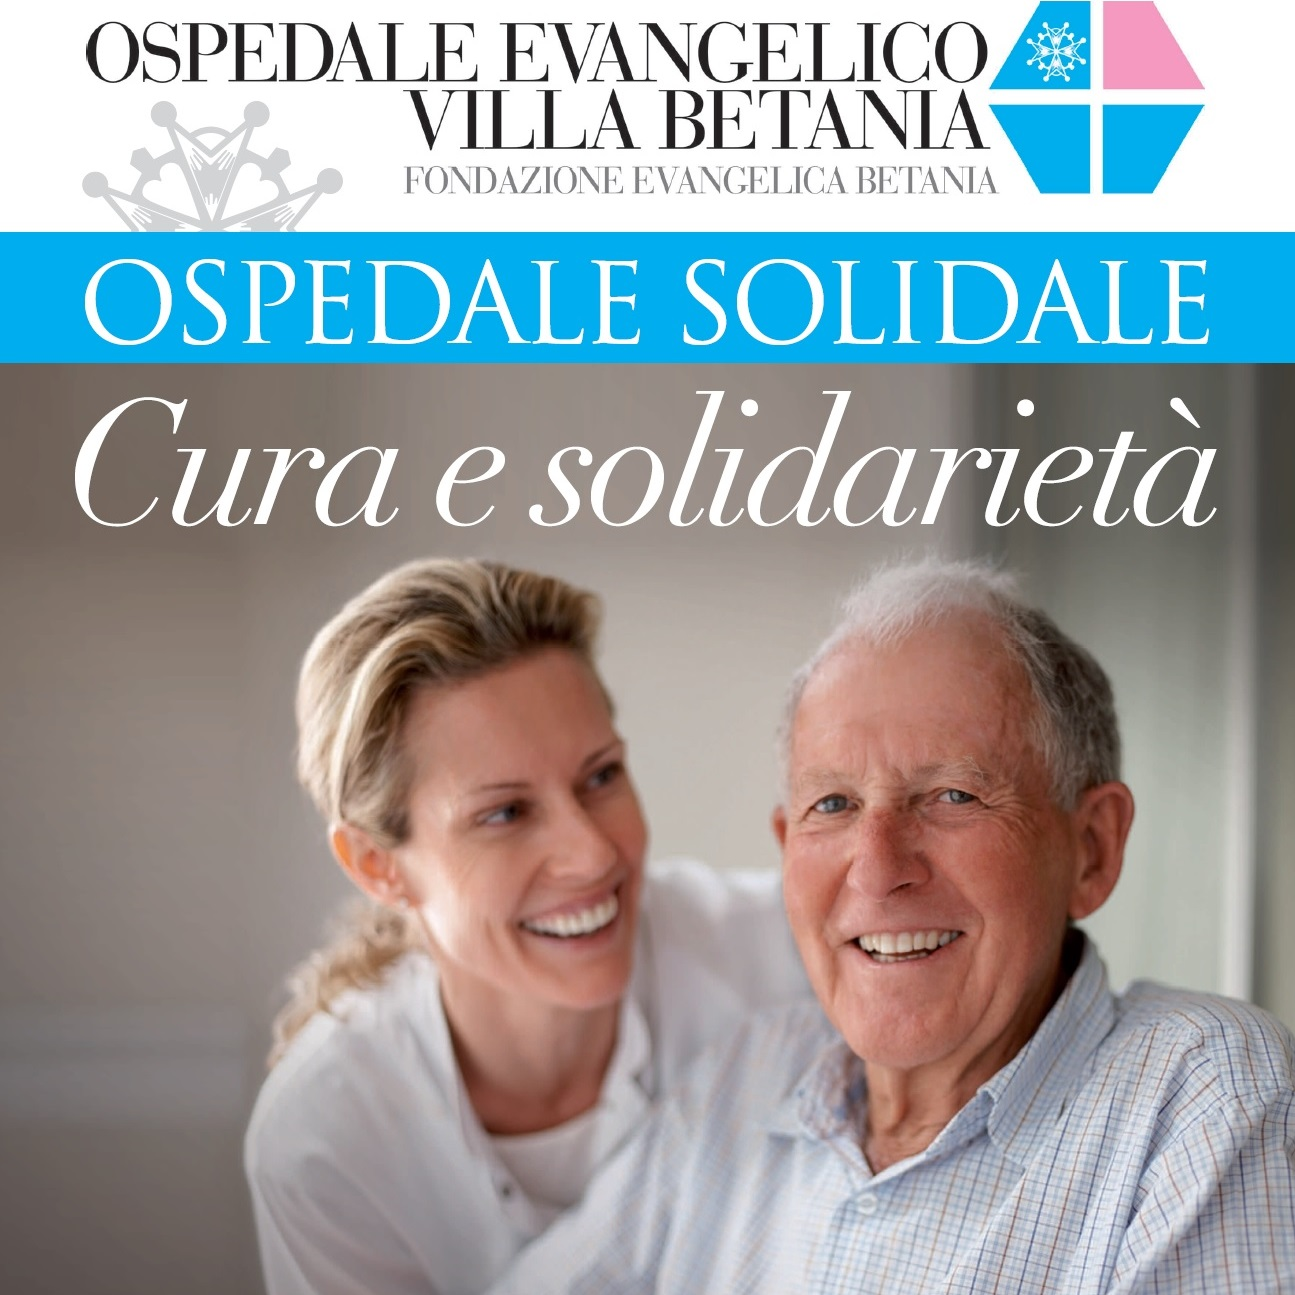 Opedale solidale - Copia